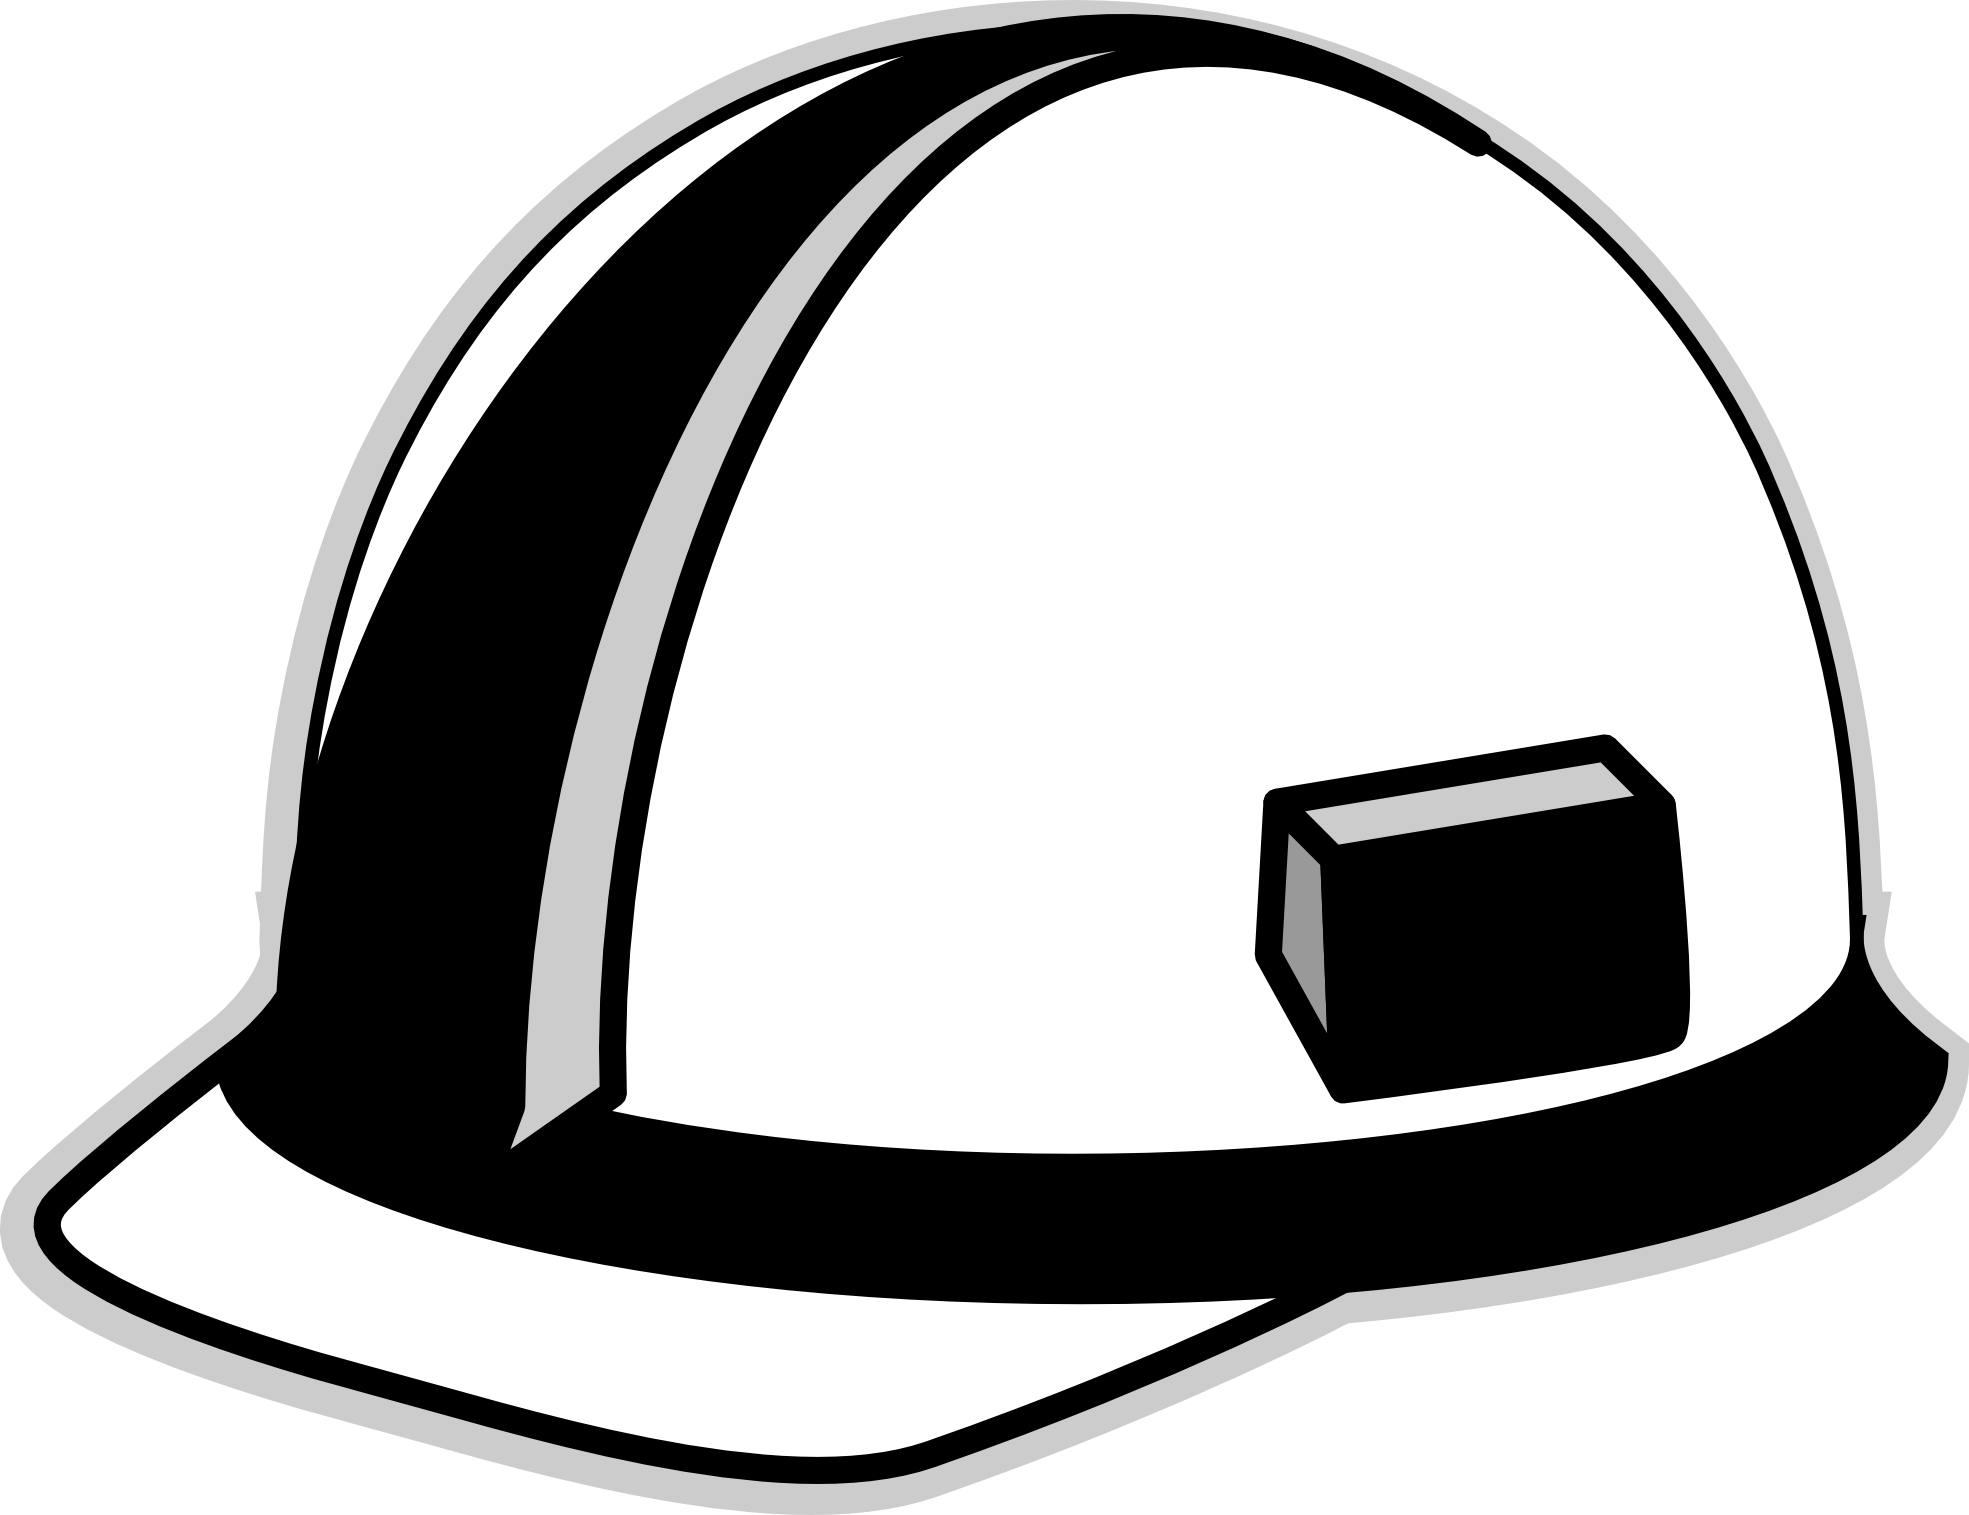 Hat clipart coal miner. Construction panda free images